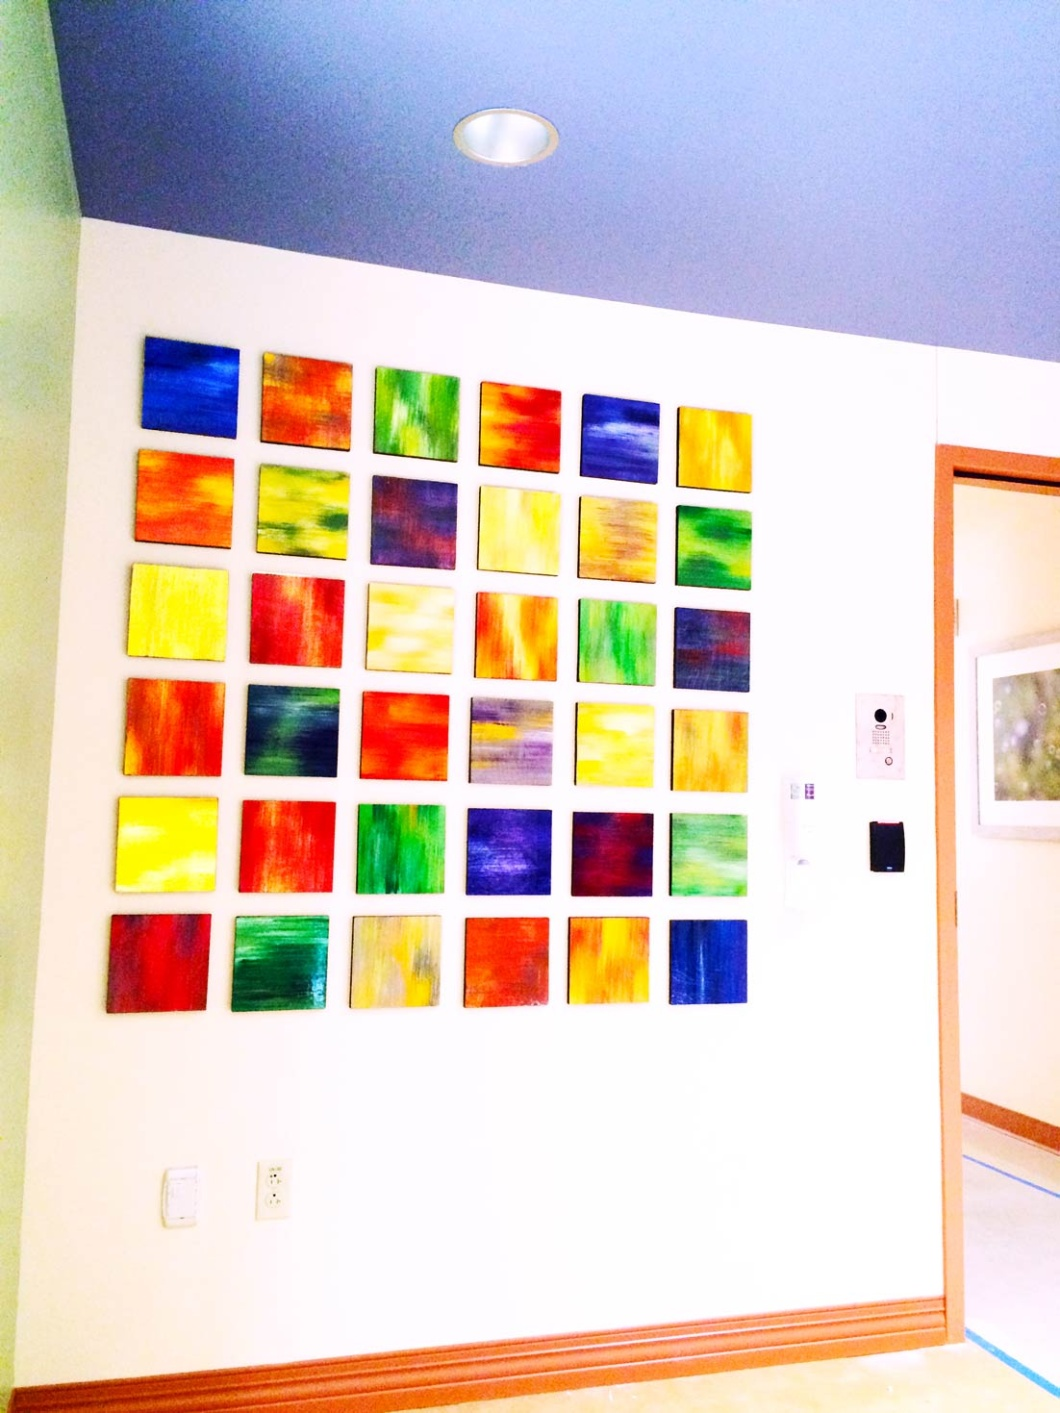 Custom Healthcare Art | Original Abstract Art | Hospital Waiting Room Artwork